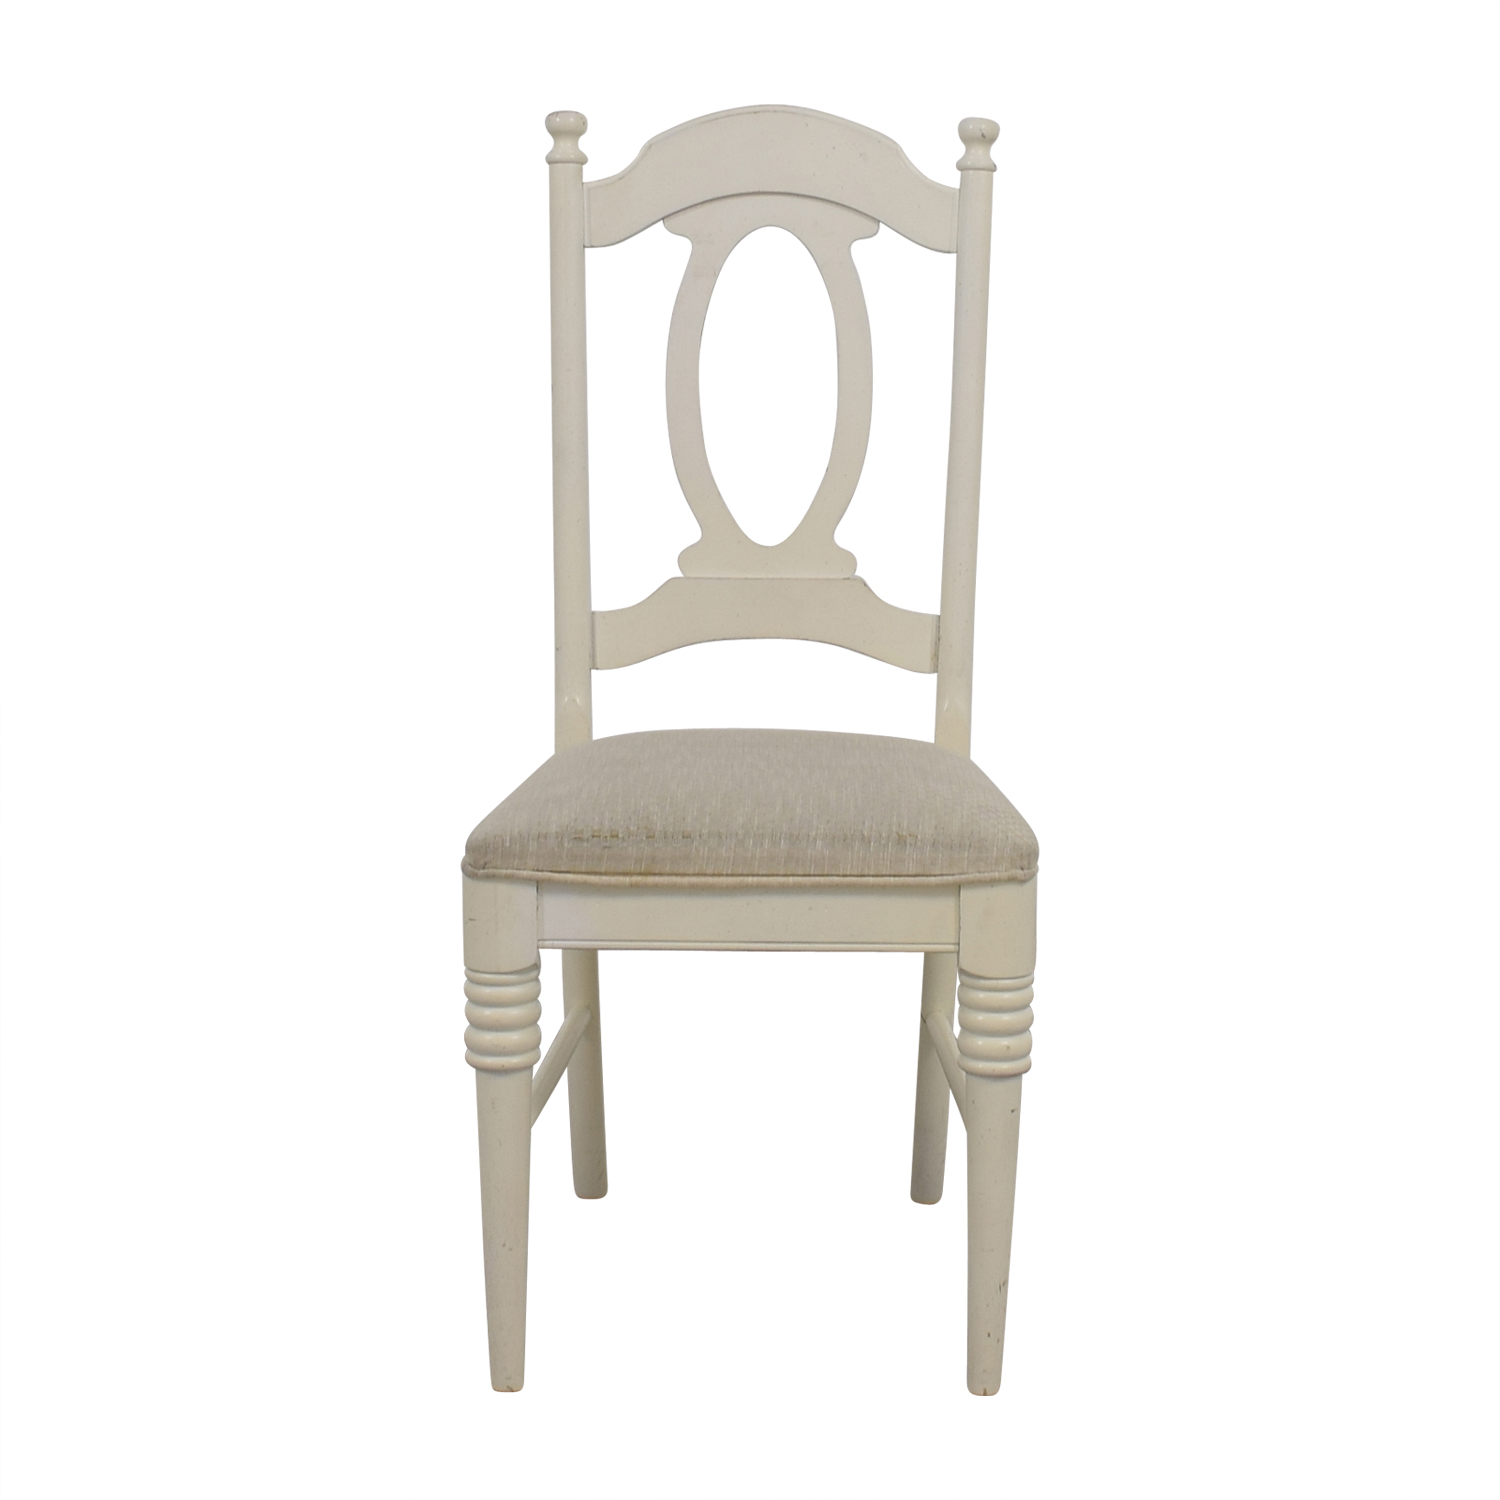 Studley Furniture Studley Furniture Classic Accent Chair for sale